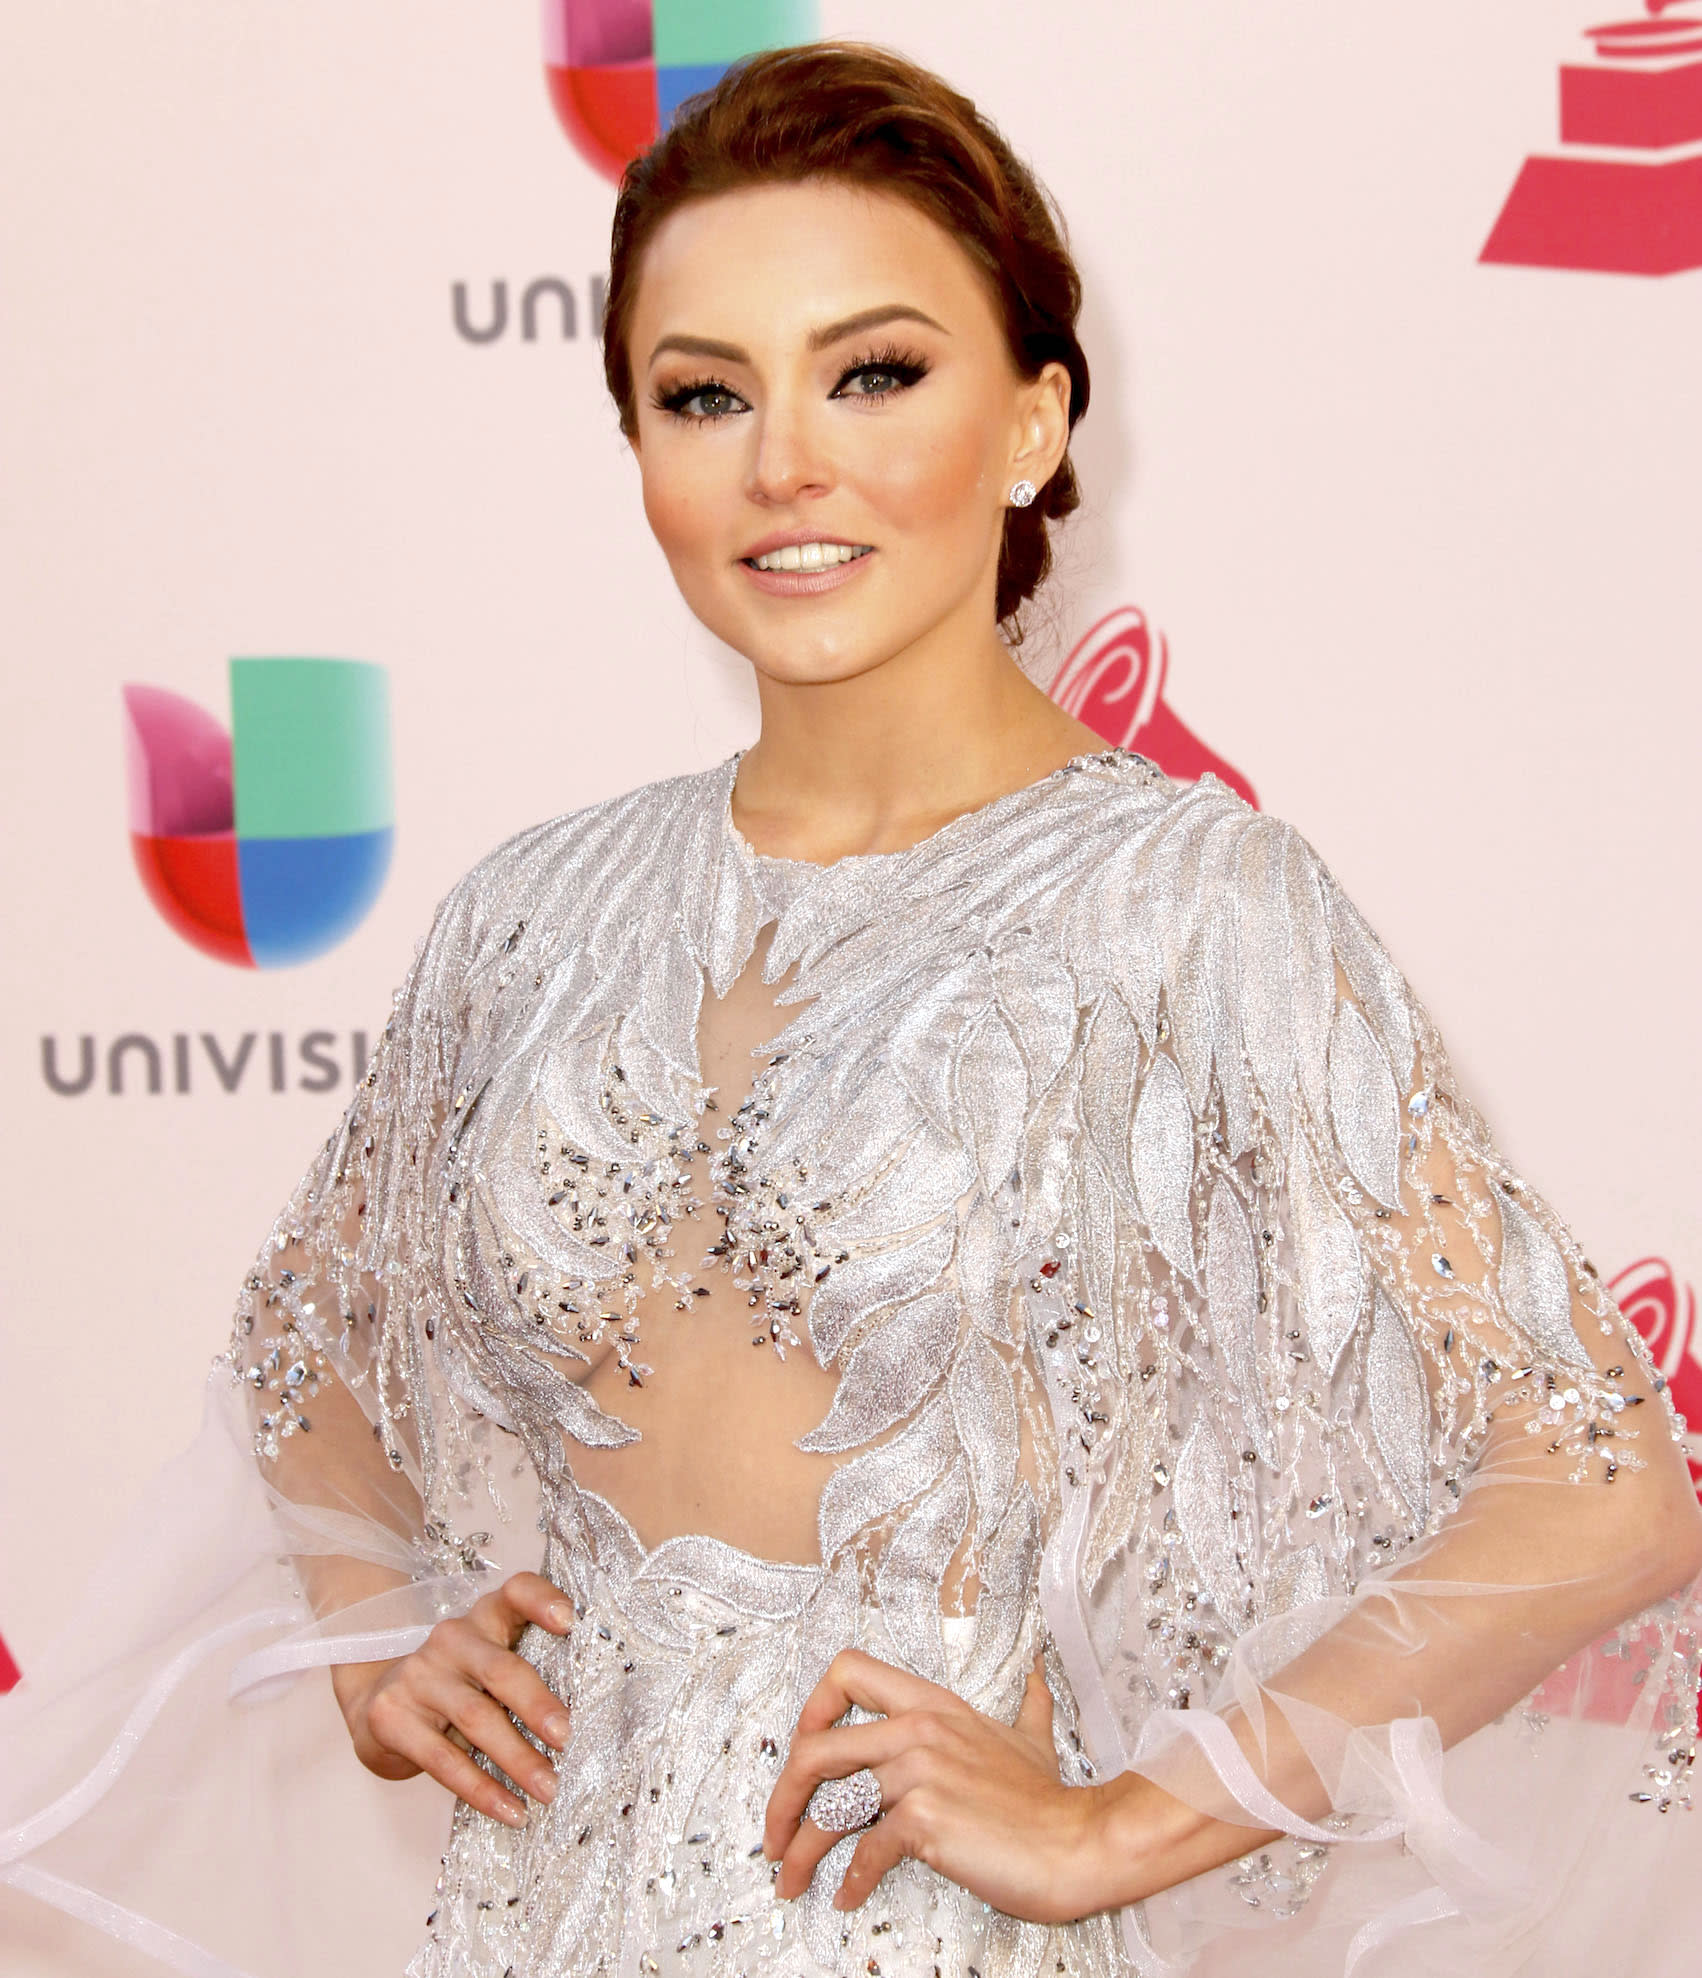 Angelique Boyer angelique boyer se disculpa por altercado con youtuber